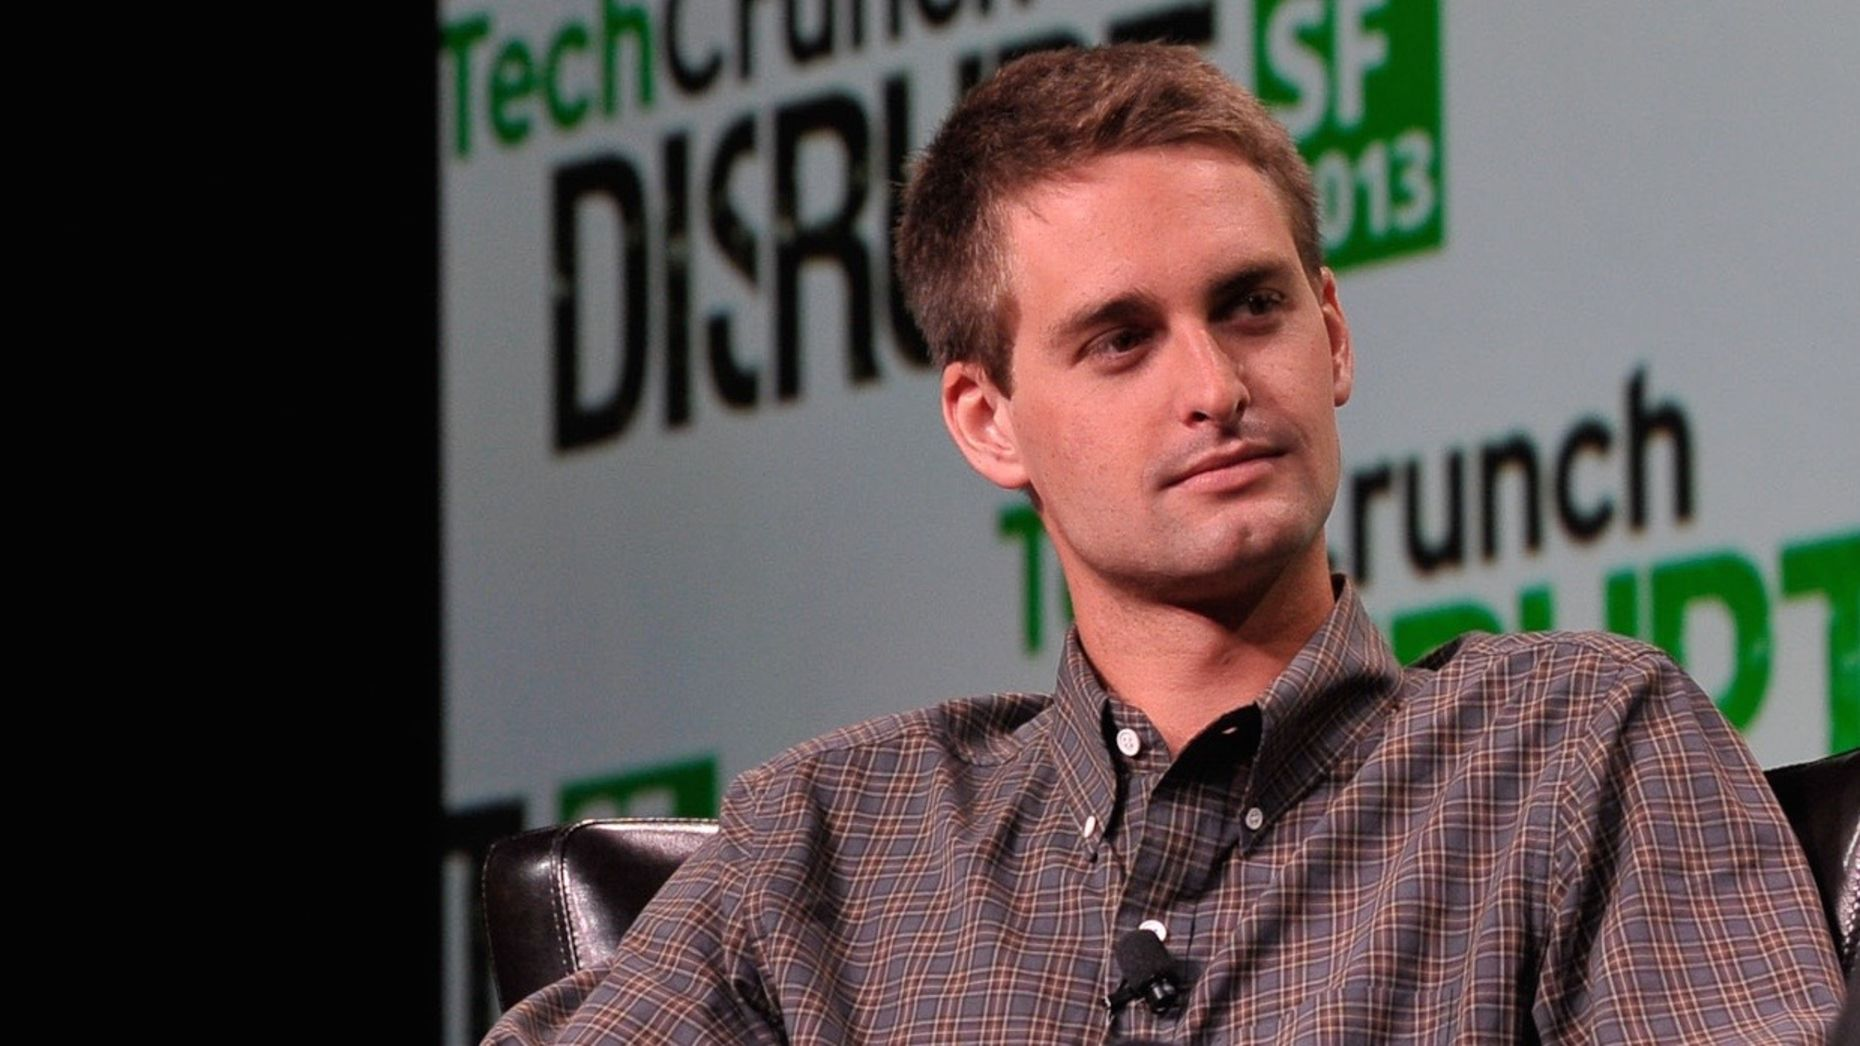 Evan Spiegel. Photo by Flickr/TechCrunch.